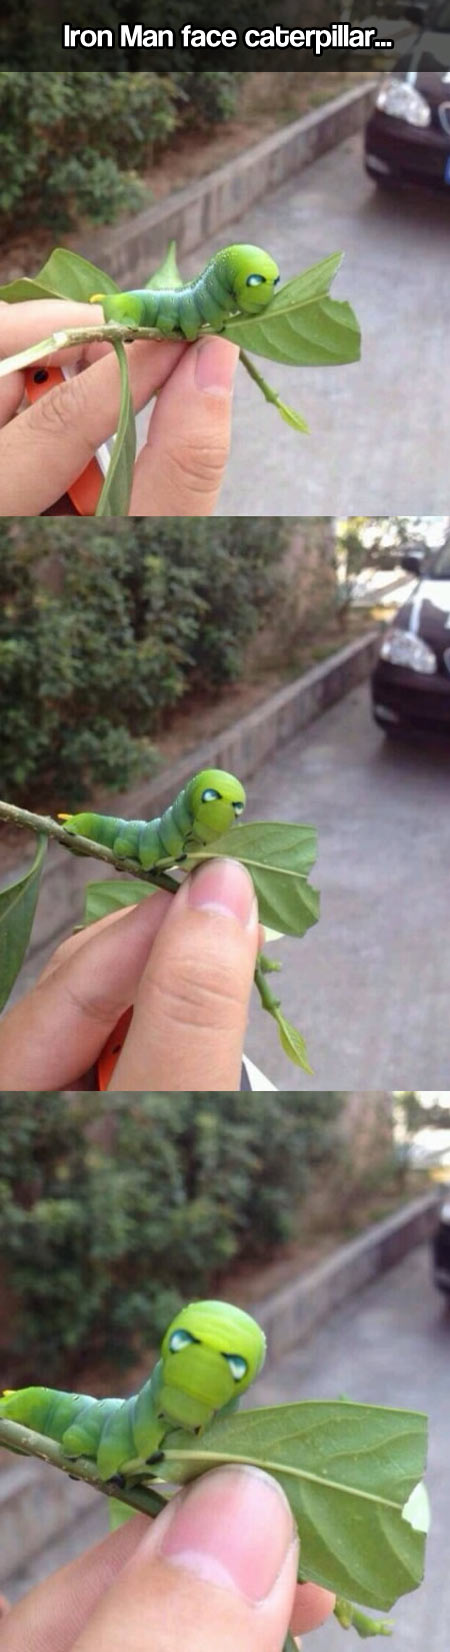 A caterpillar with a very particular face…